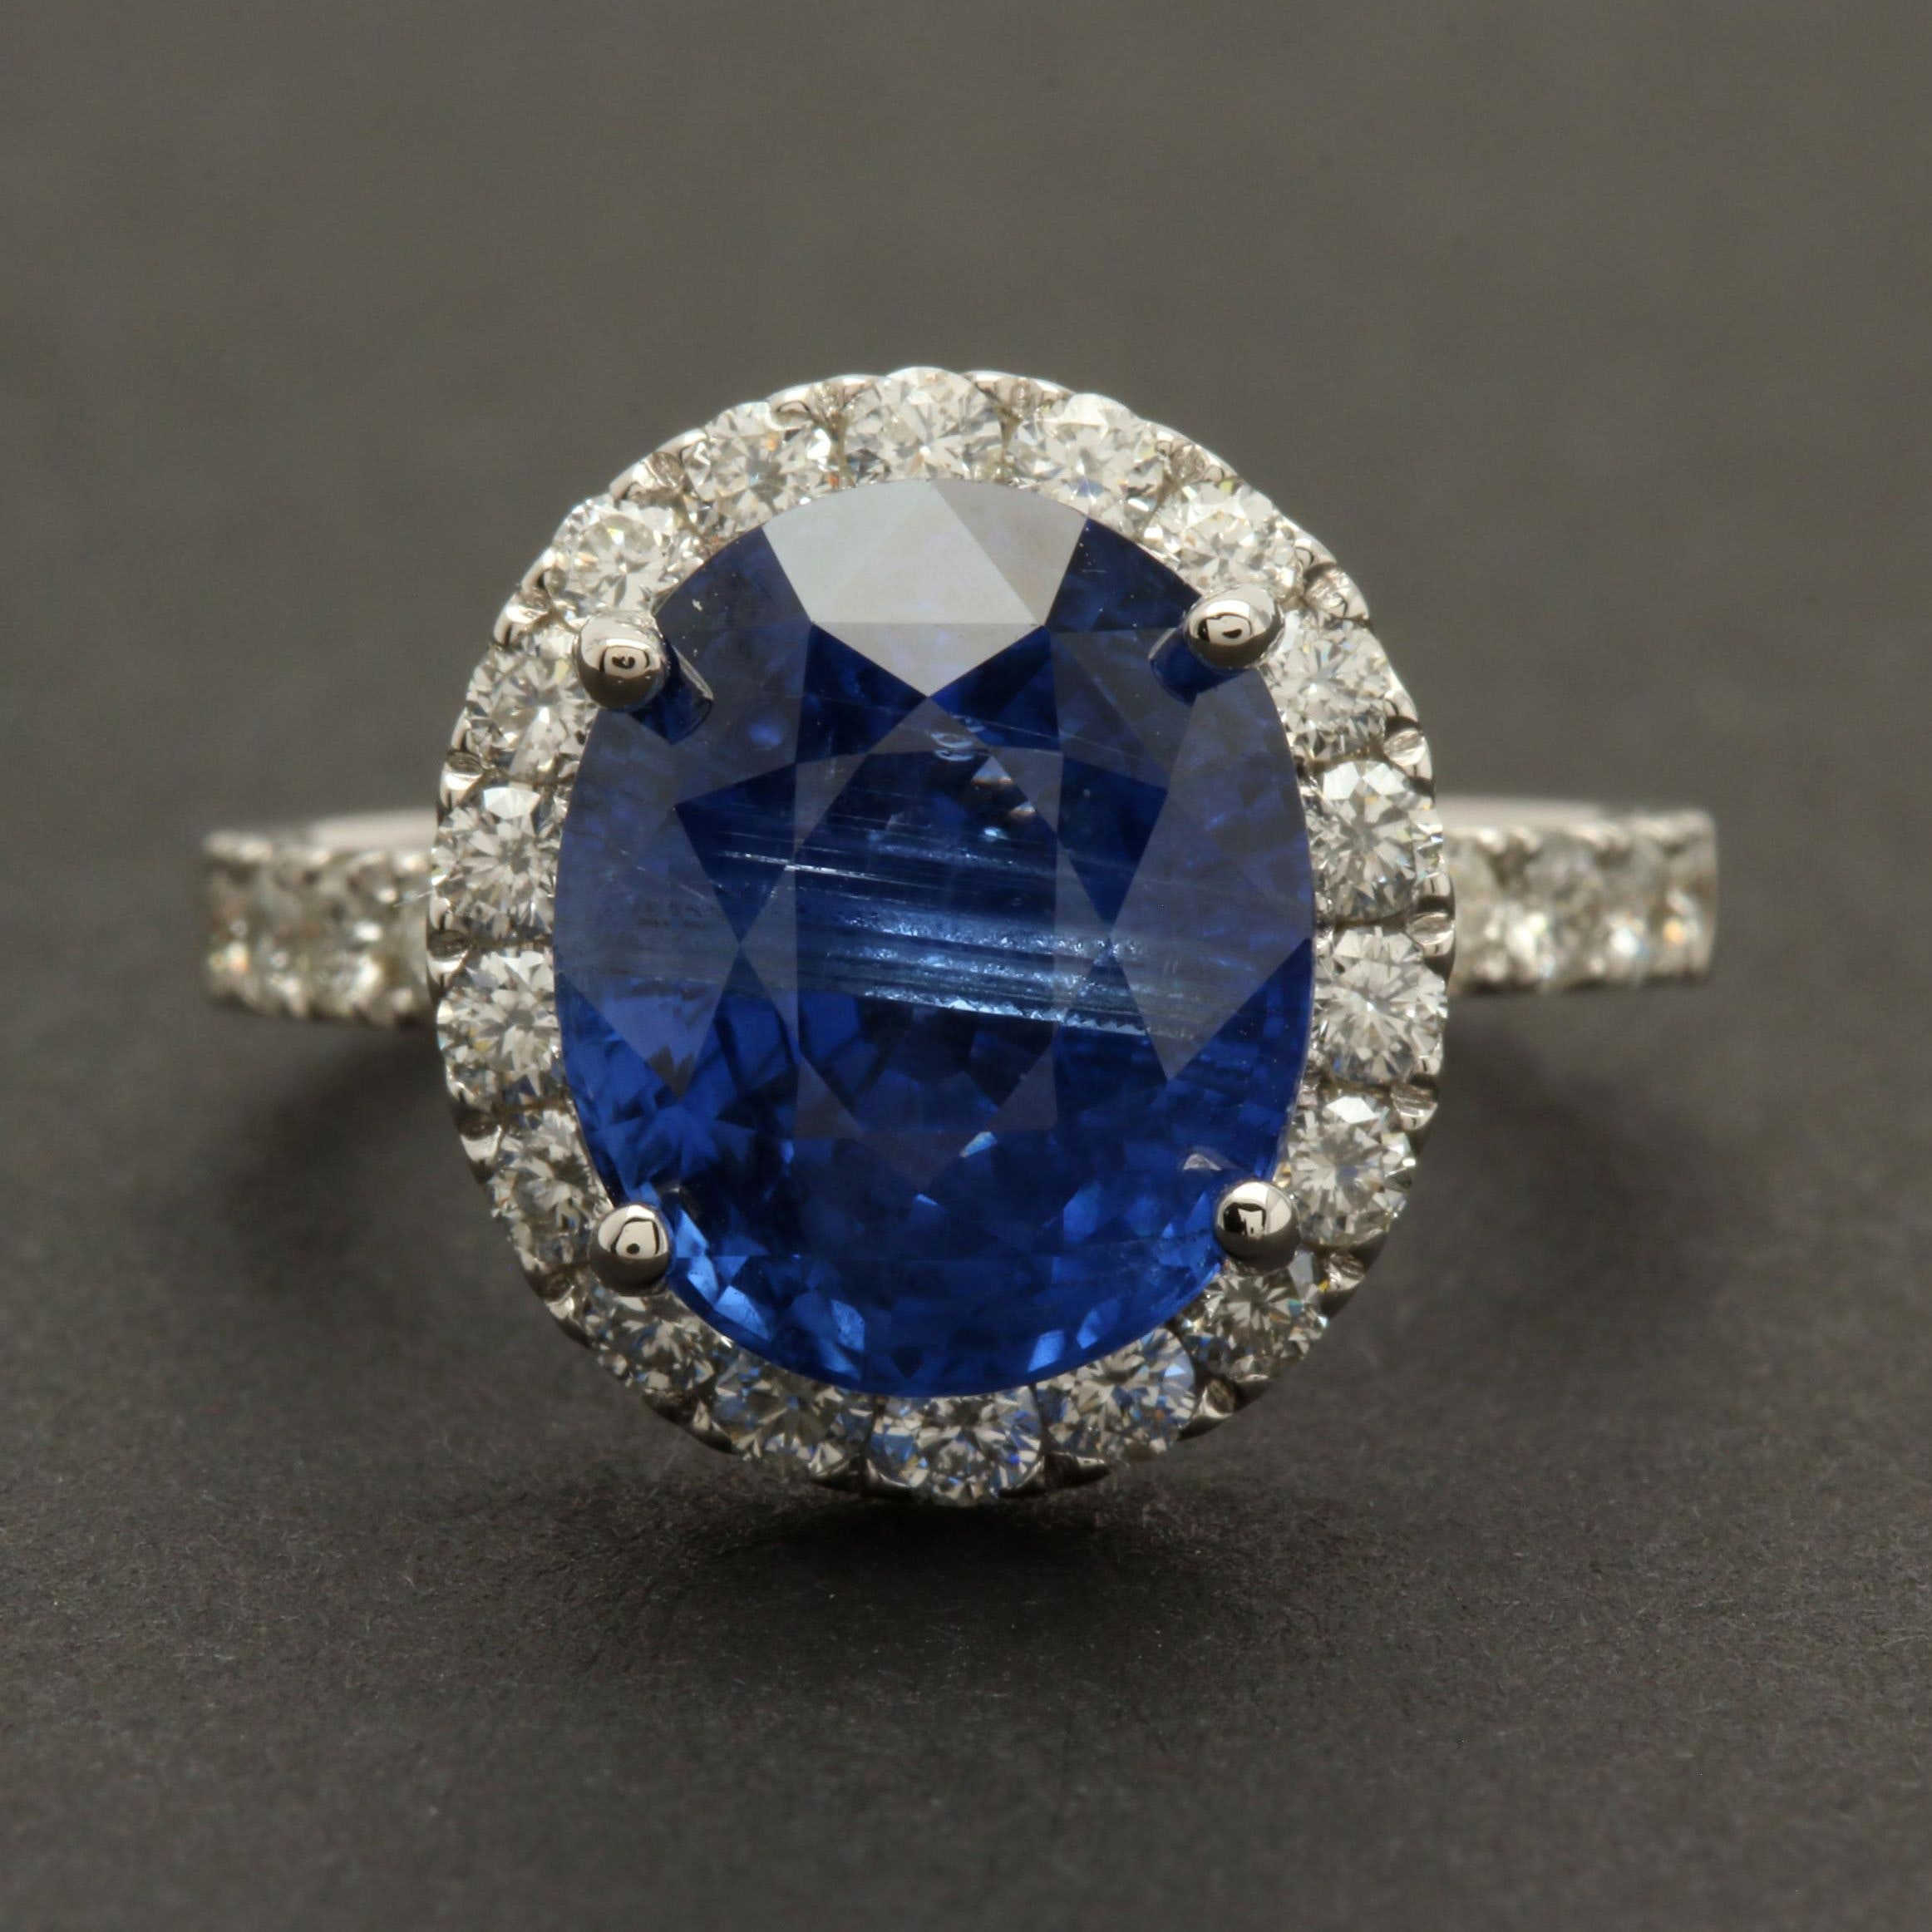 18K White Gold 6.29 CT Violetish Blue Sapphire and Diamond Ring with GIA Report